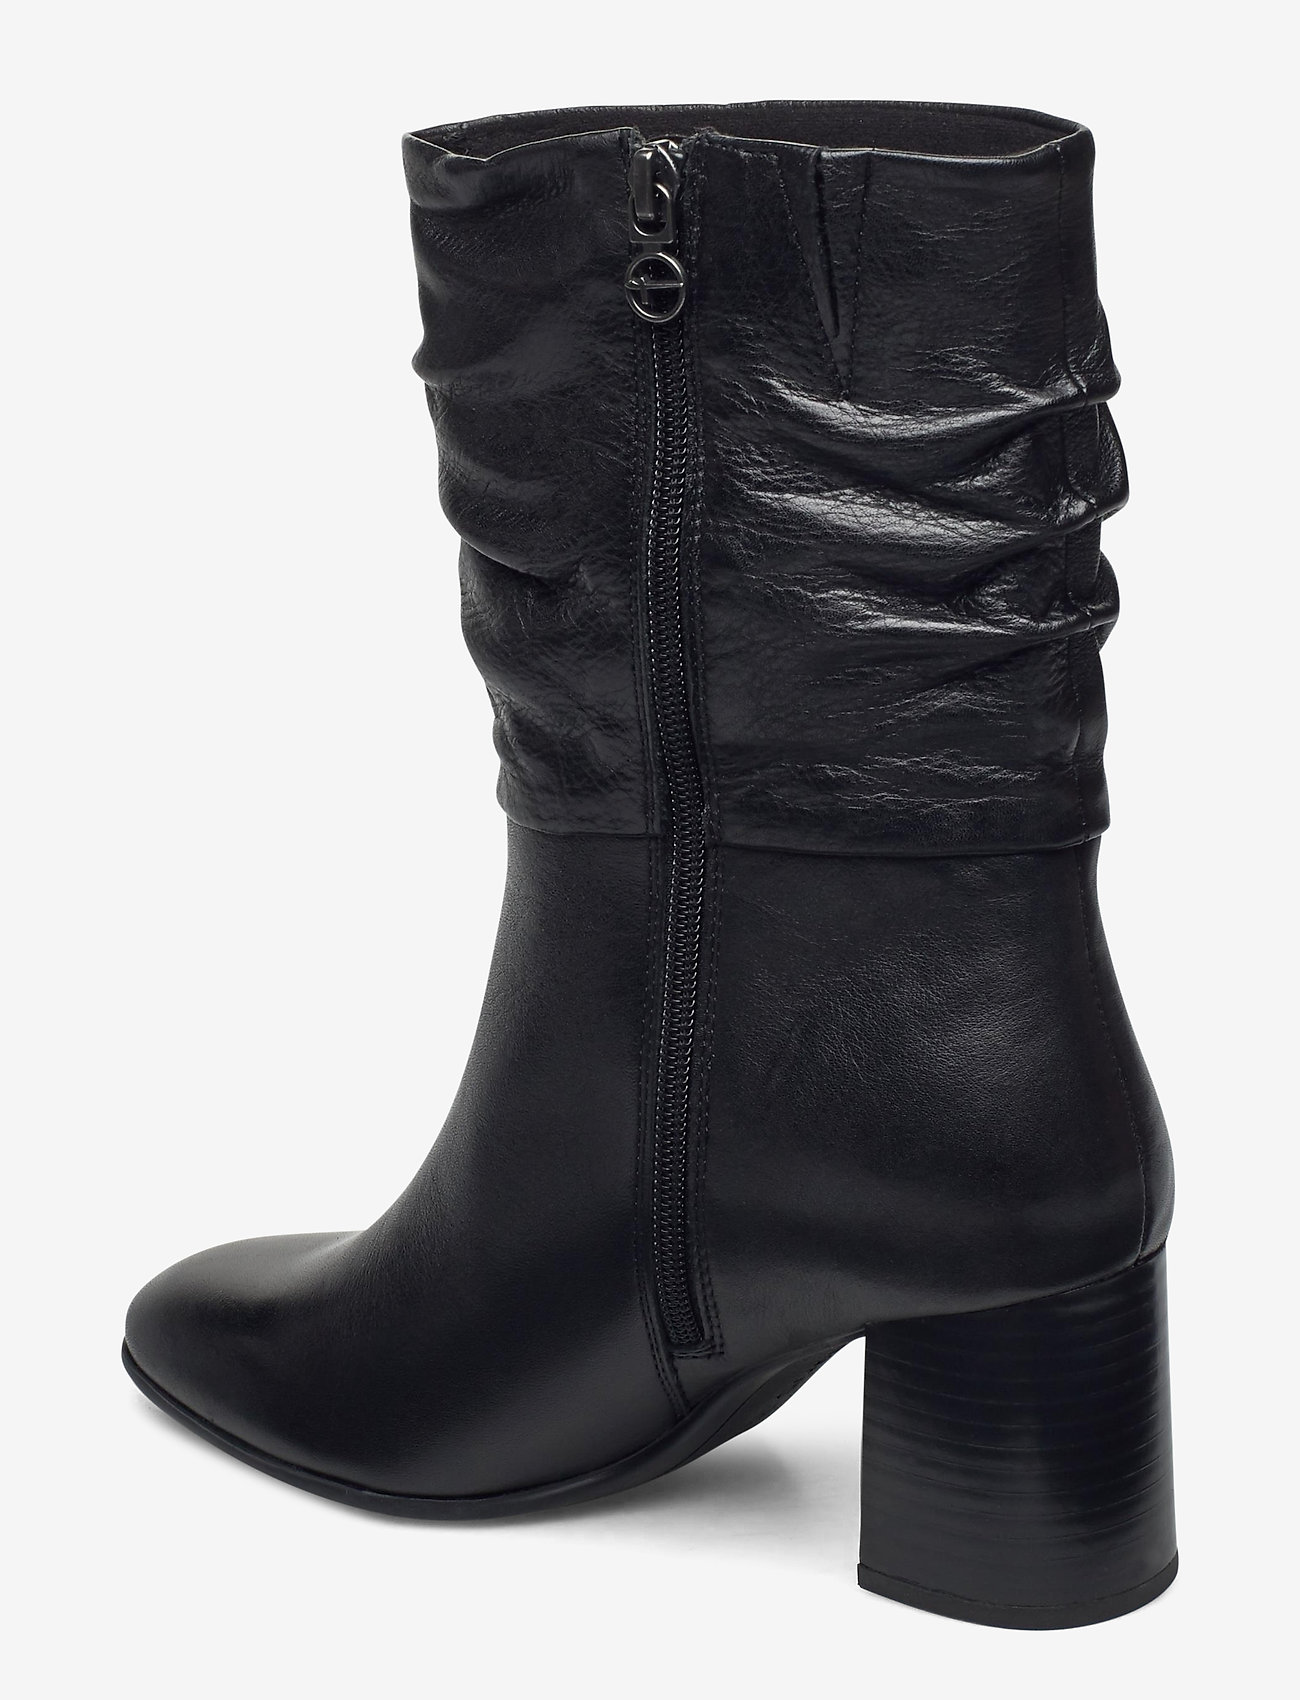 Woms Boots (Black) (120 €) - Tamaris bx7Ms